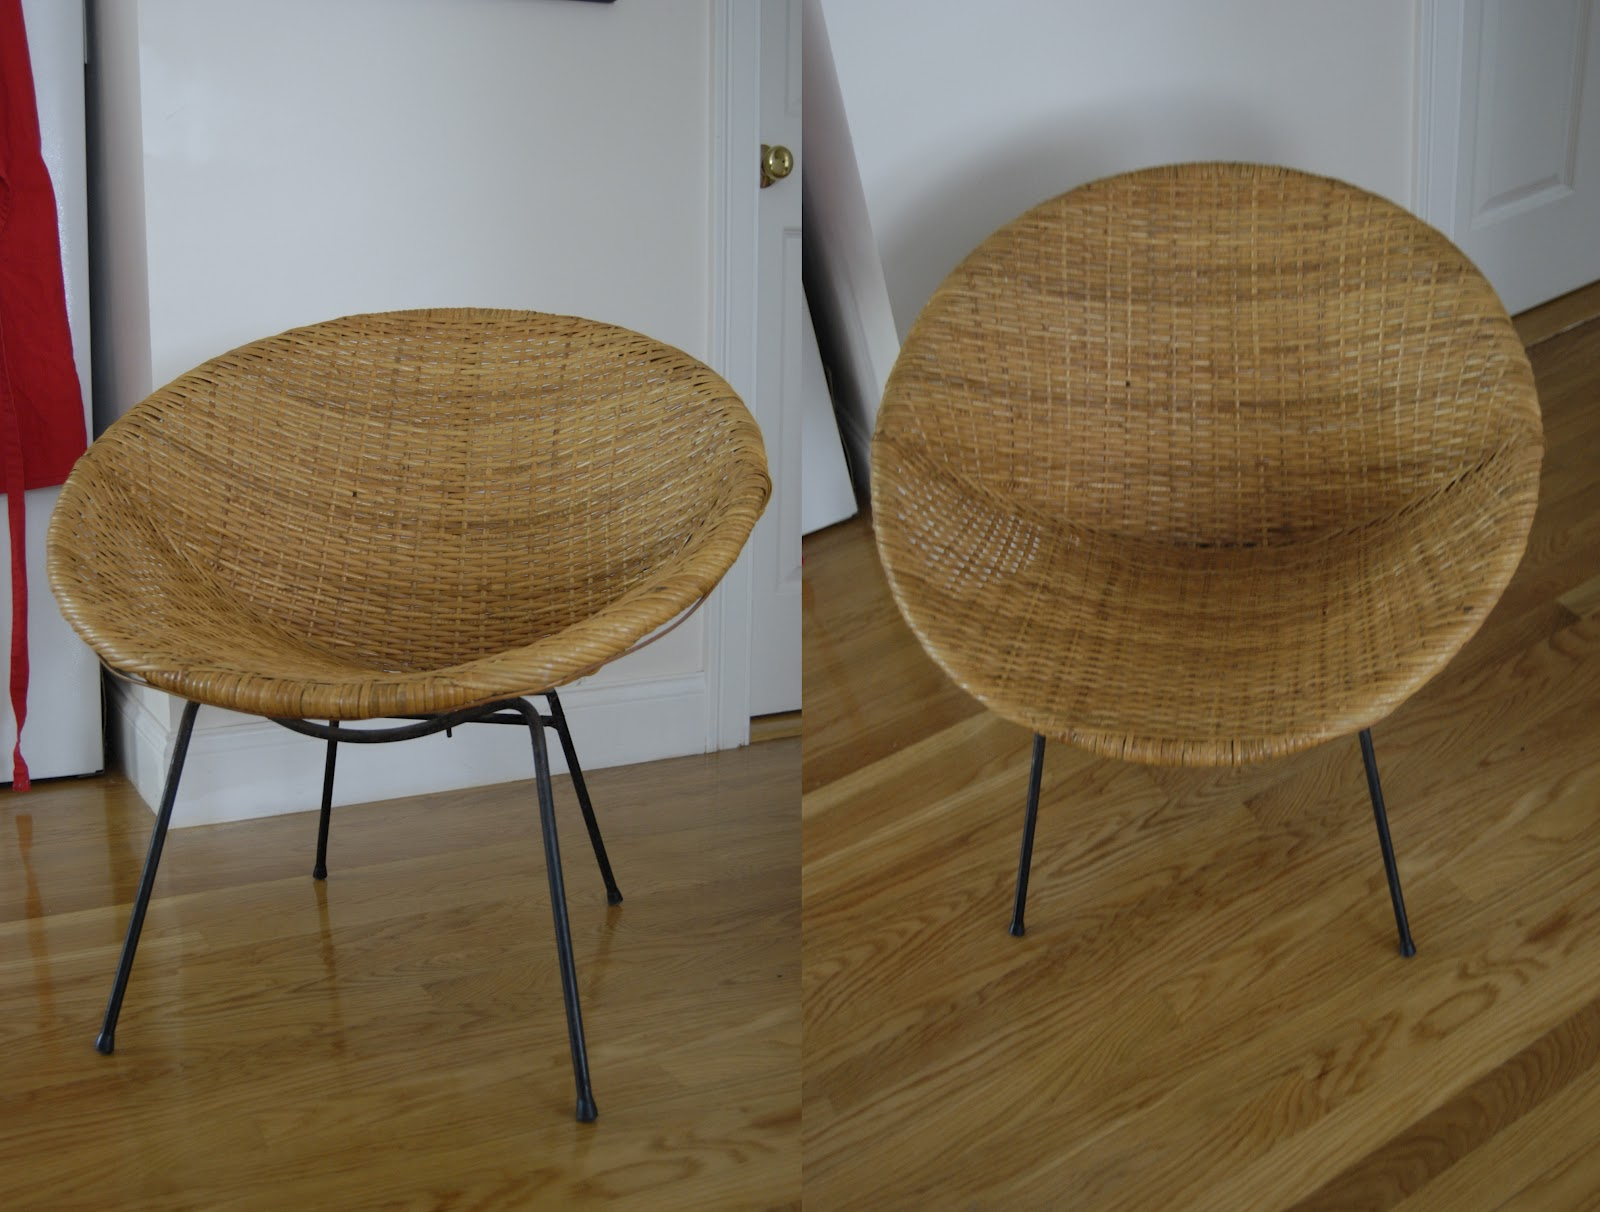 Pieces of Anna: Bargain Hunting: 1960's Round Wicker Chair